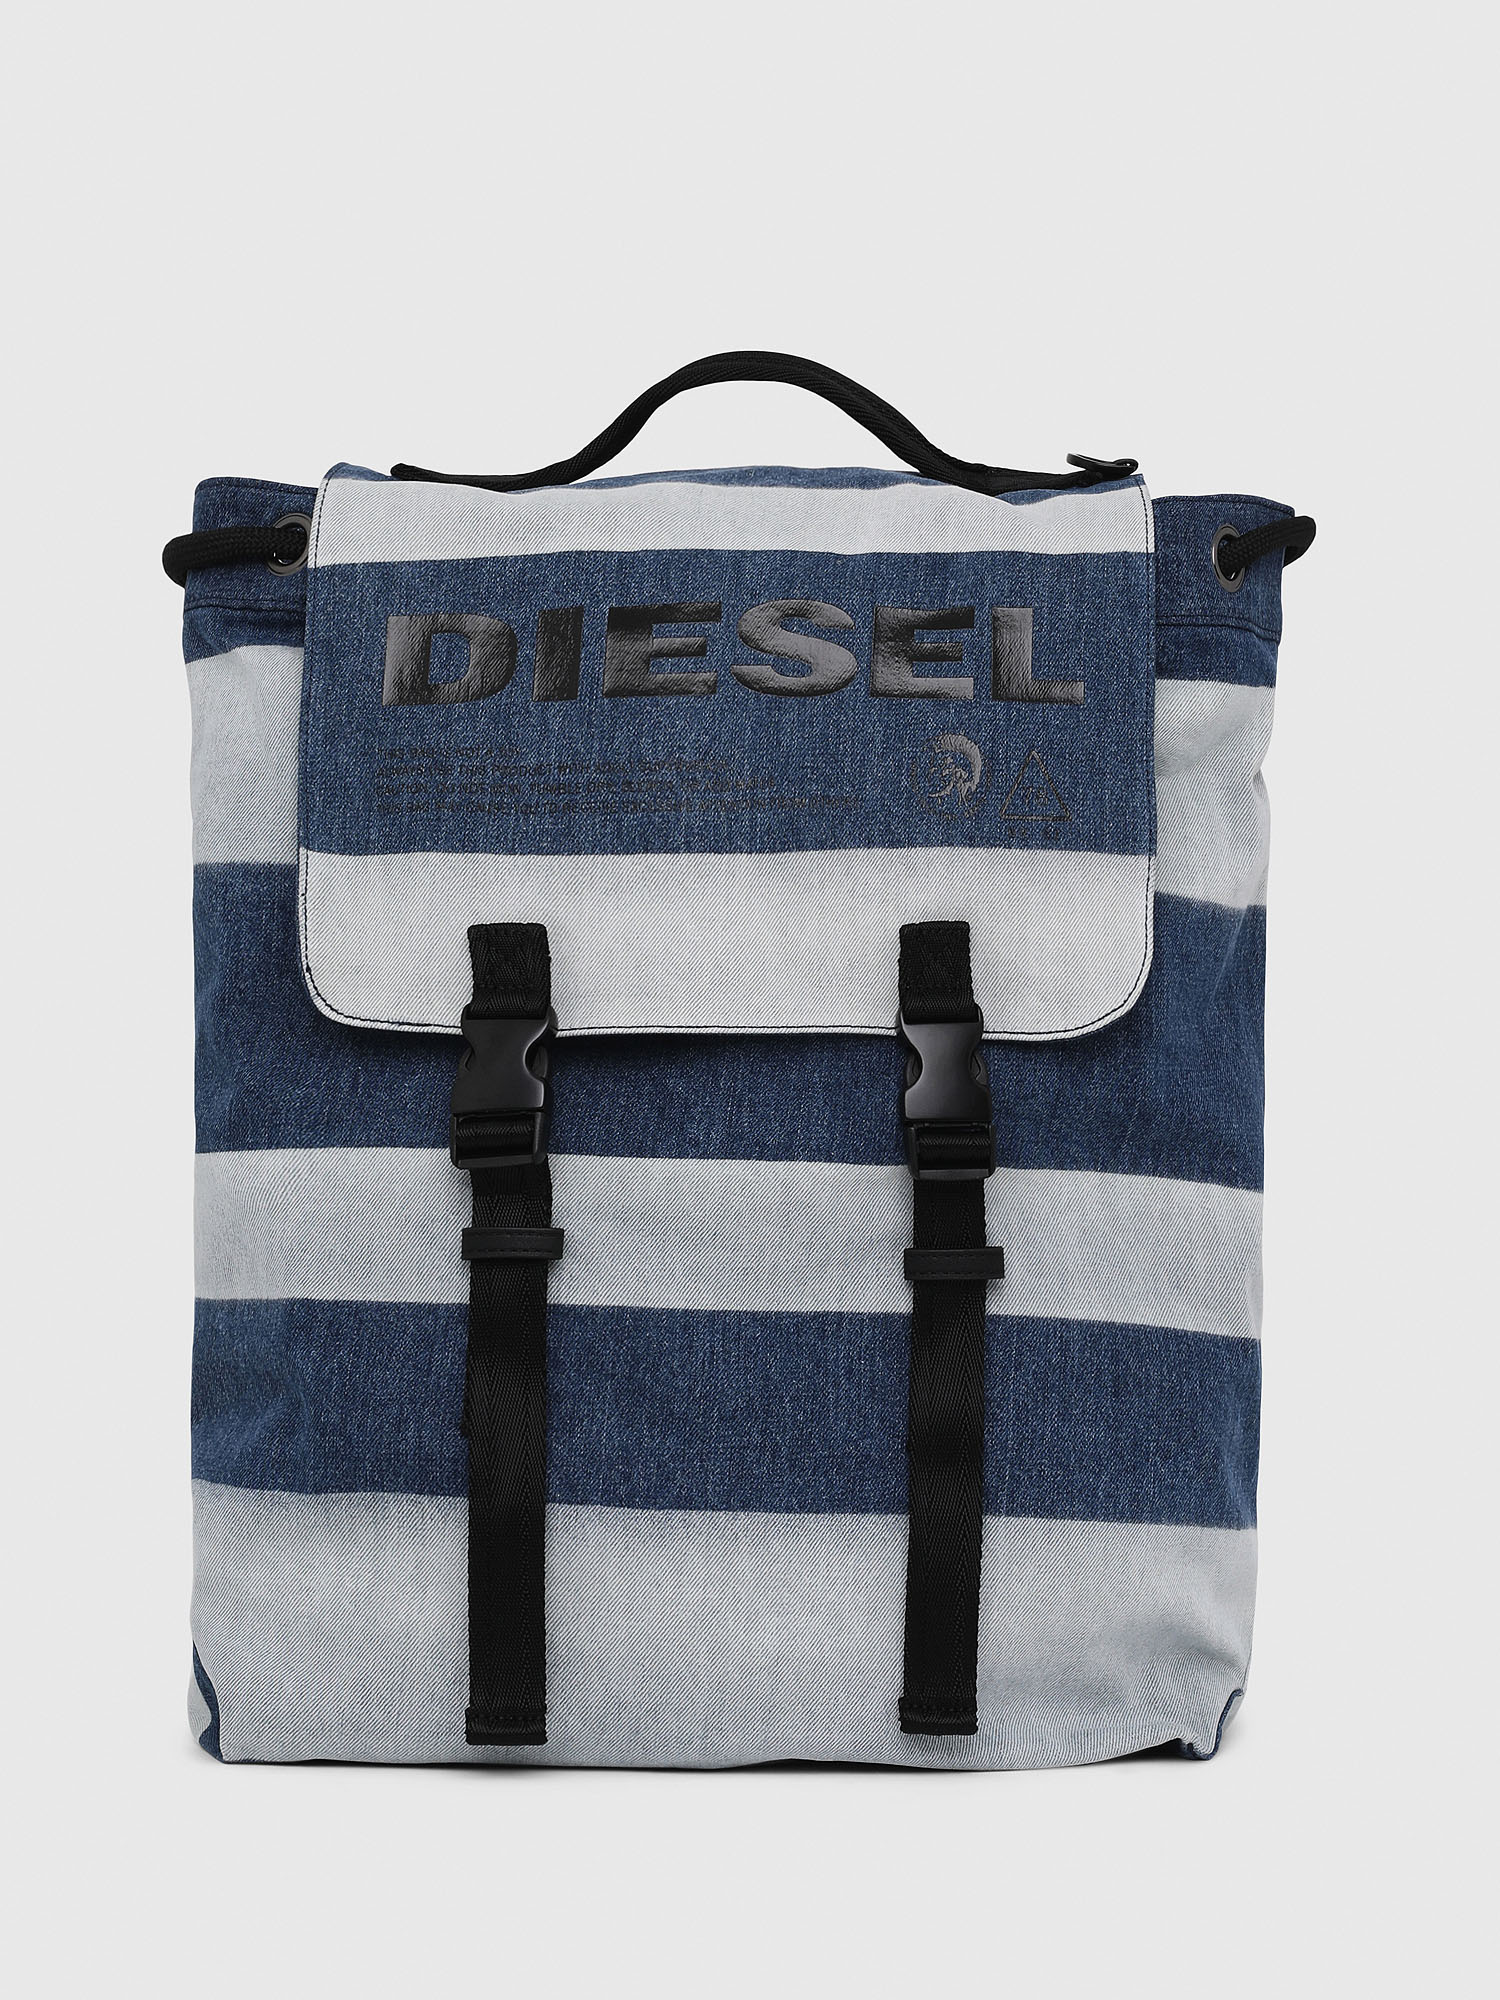 Diesel Backpacks P2182 - Blue